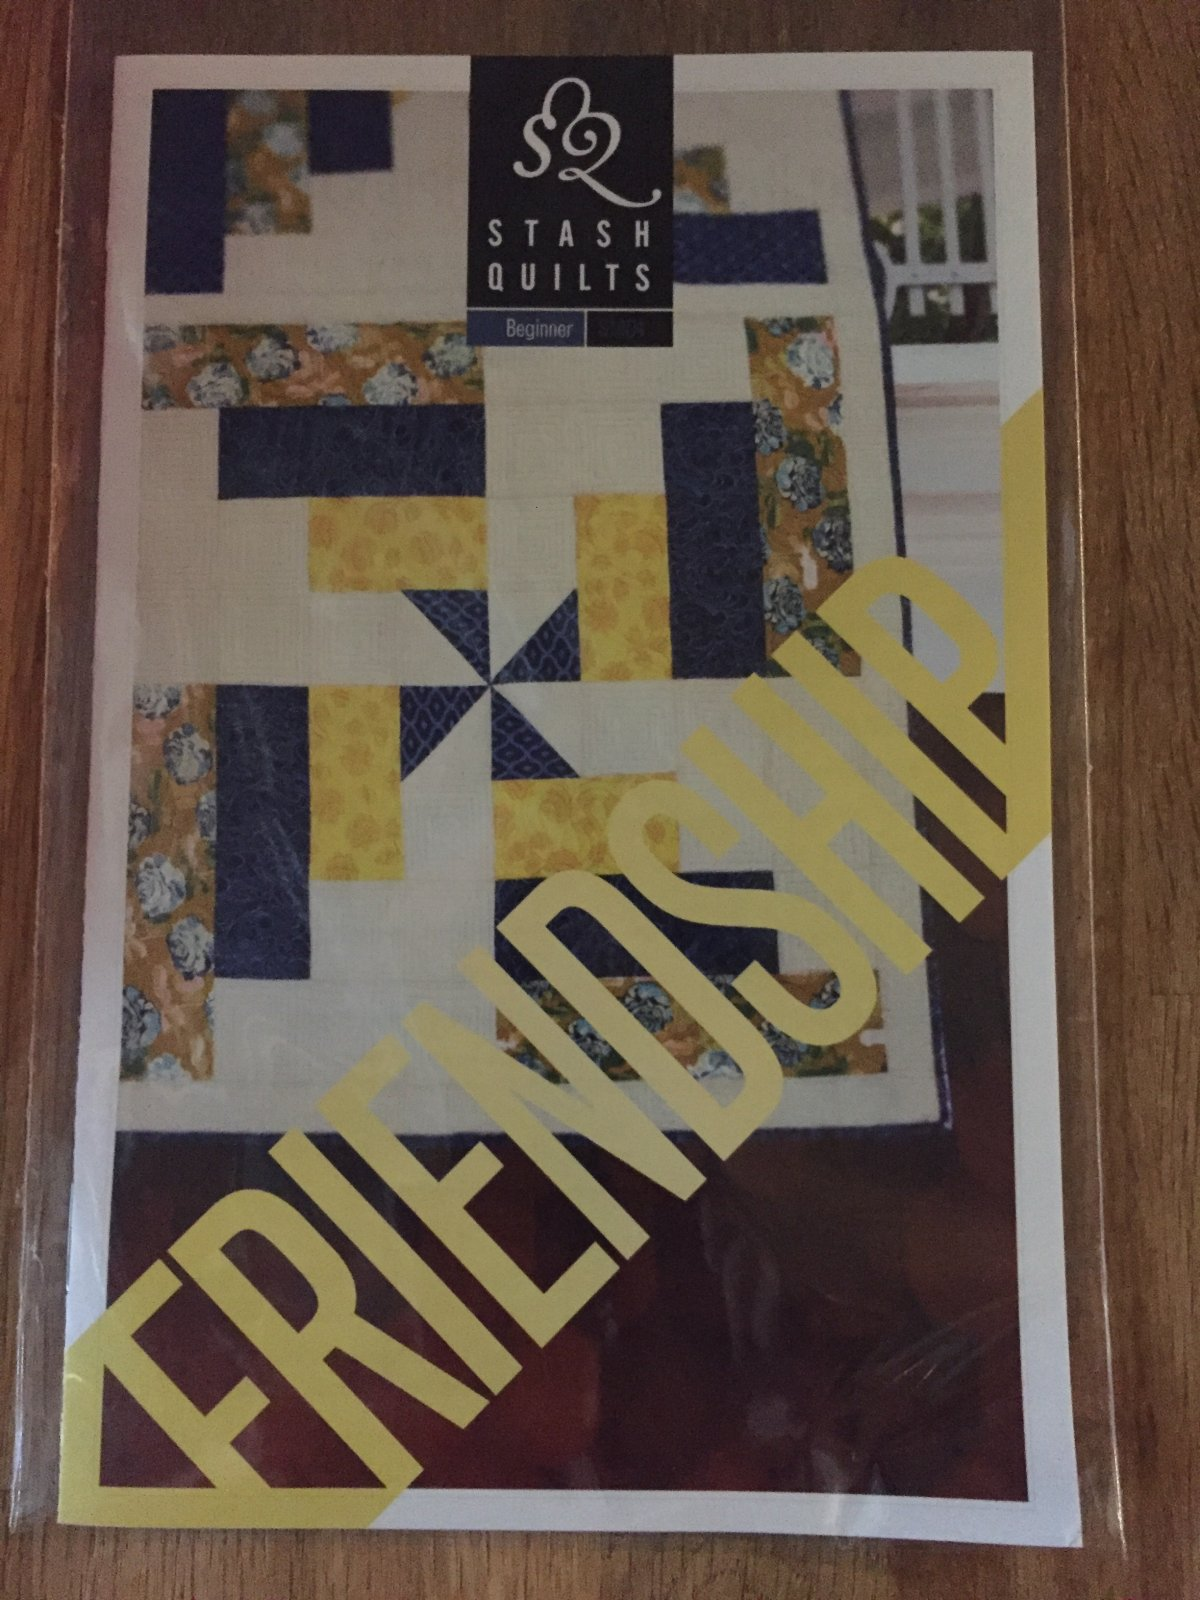 The Friendship Quilt by Stash Quilts